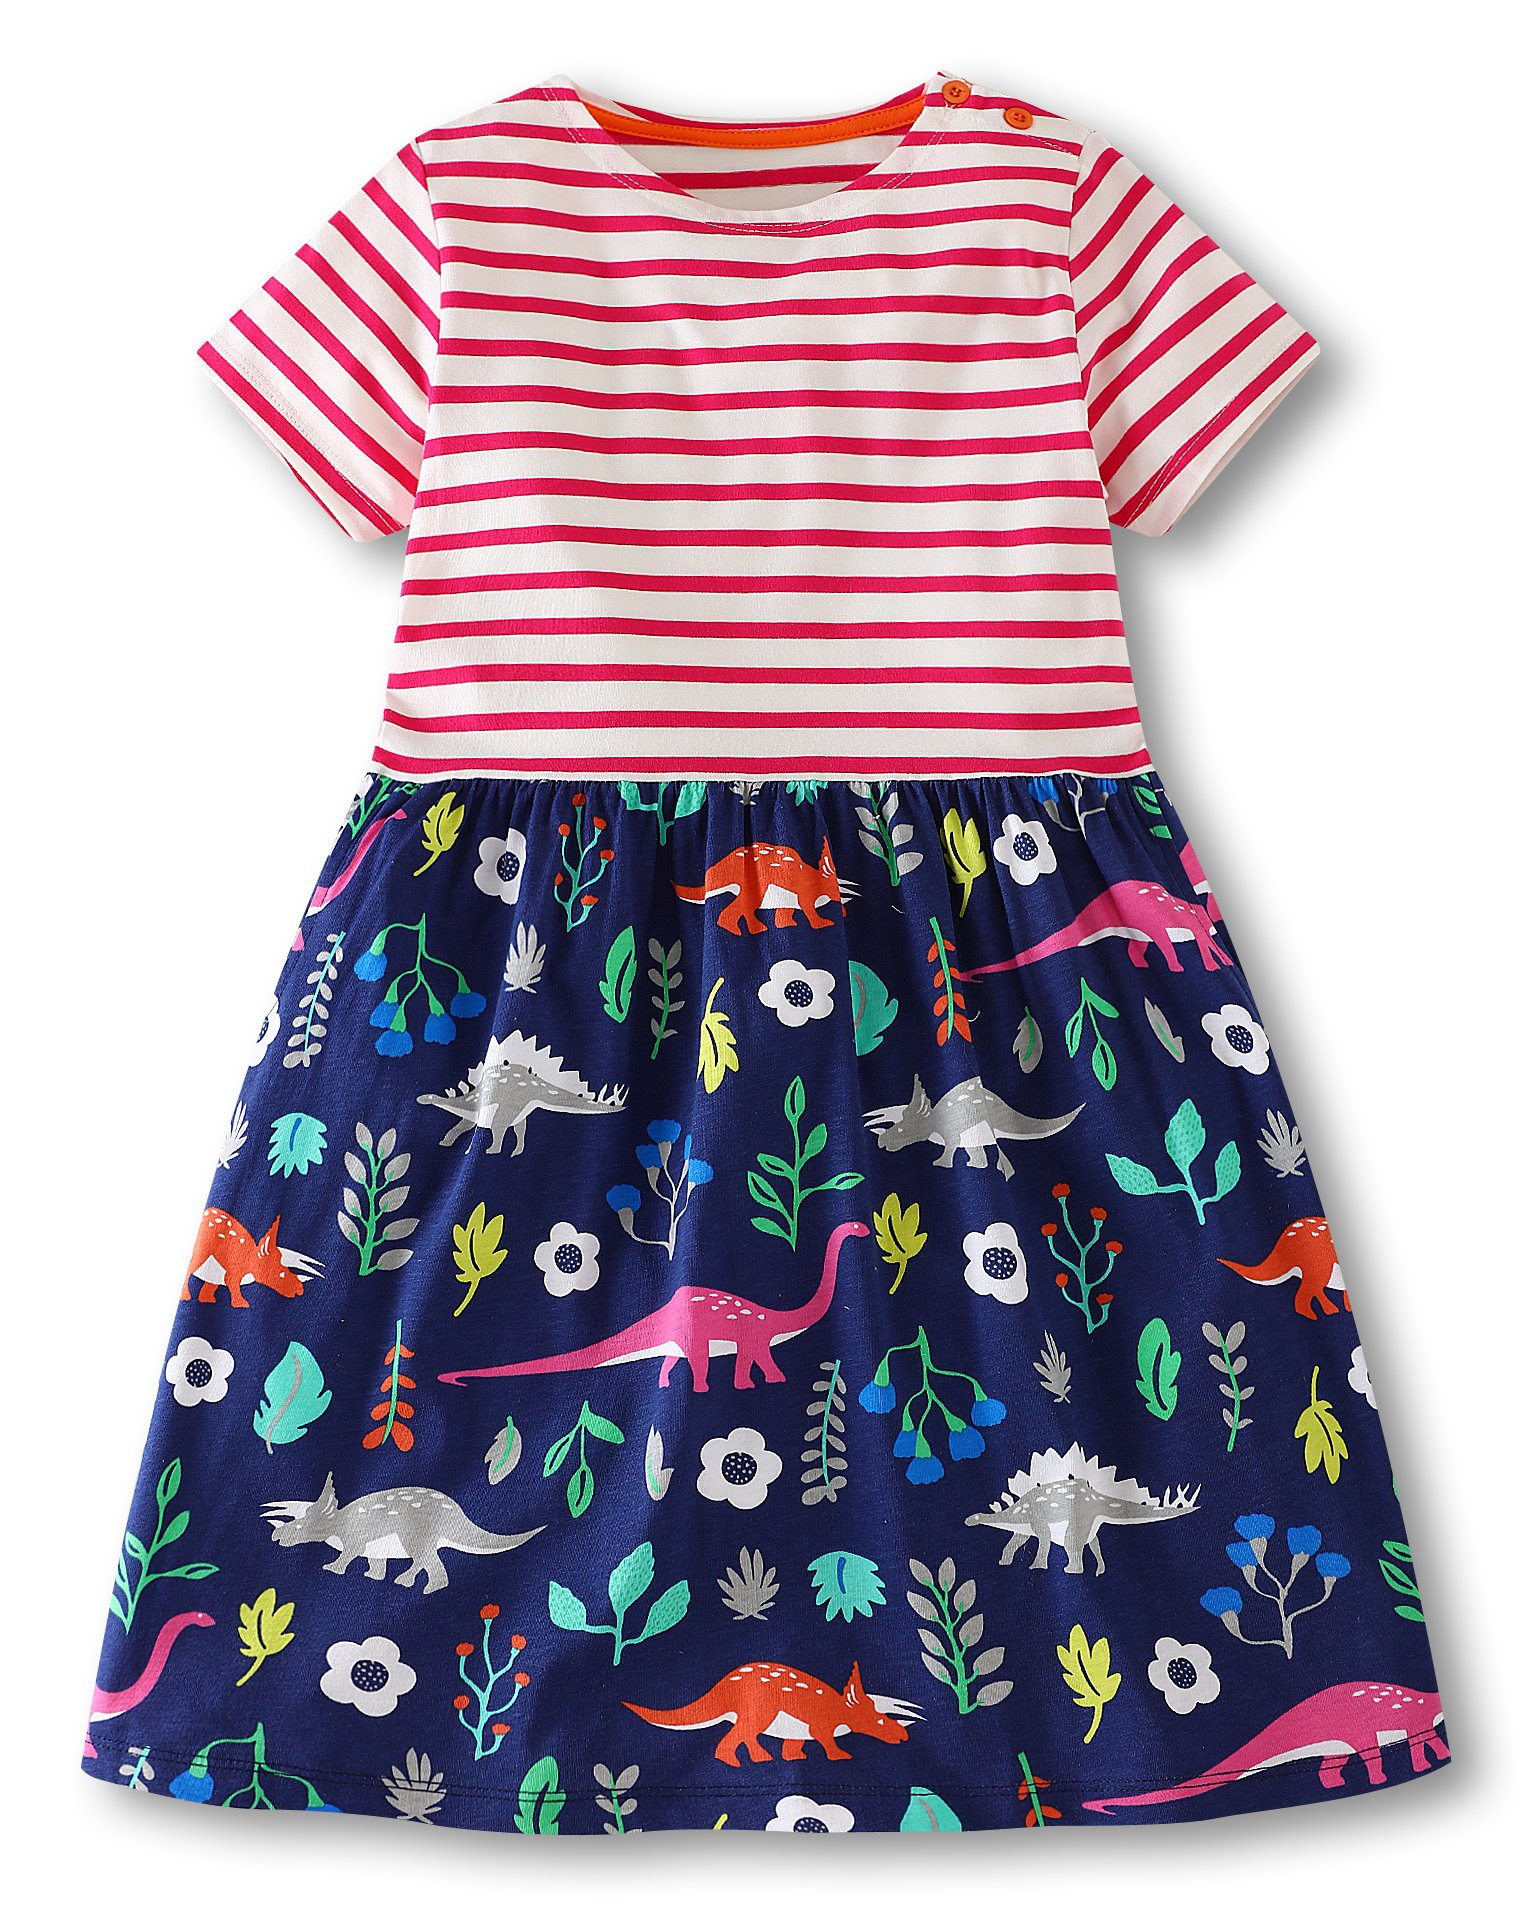 Jobakids Girls Dresses Short Sleeve Summer Cotton Striped Cute Print Pattern Casual Dress for Toddler(6T/6-7YRS,Pink Dinosaur)